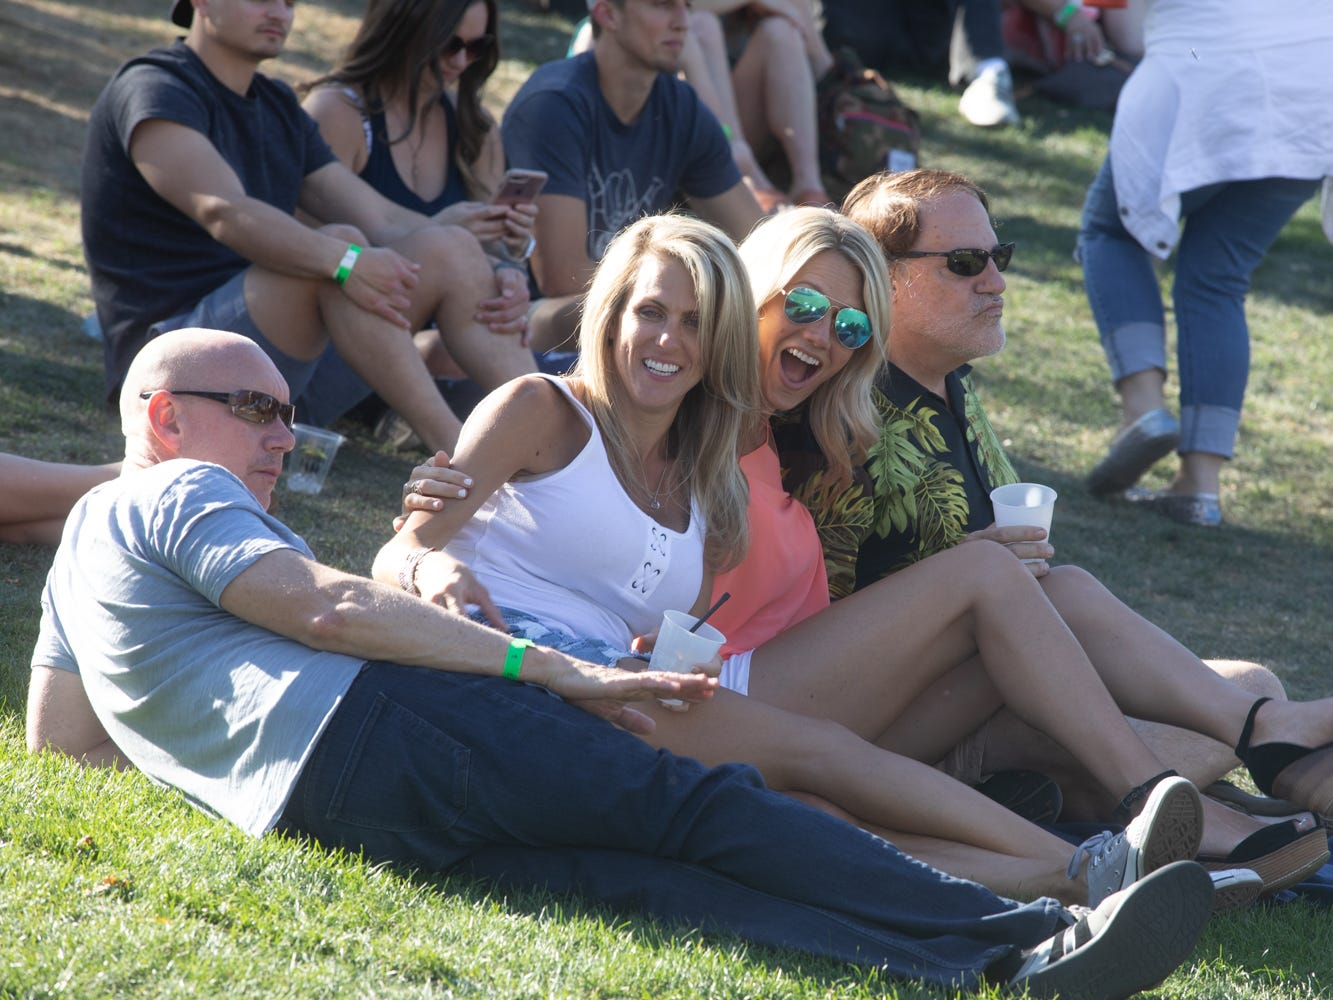 These friends enjoyed the tunes at the Scottsdale Culinary Festival on April 13, 2019.